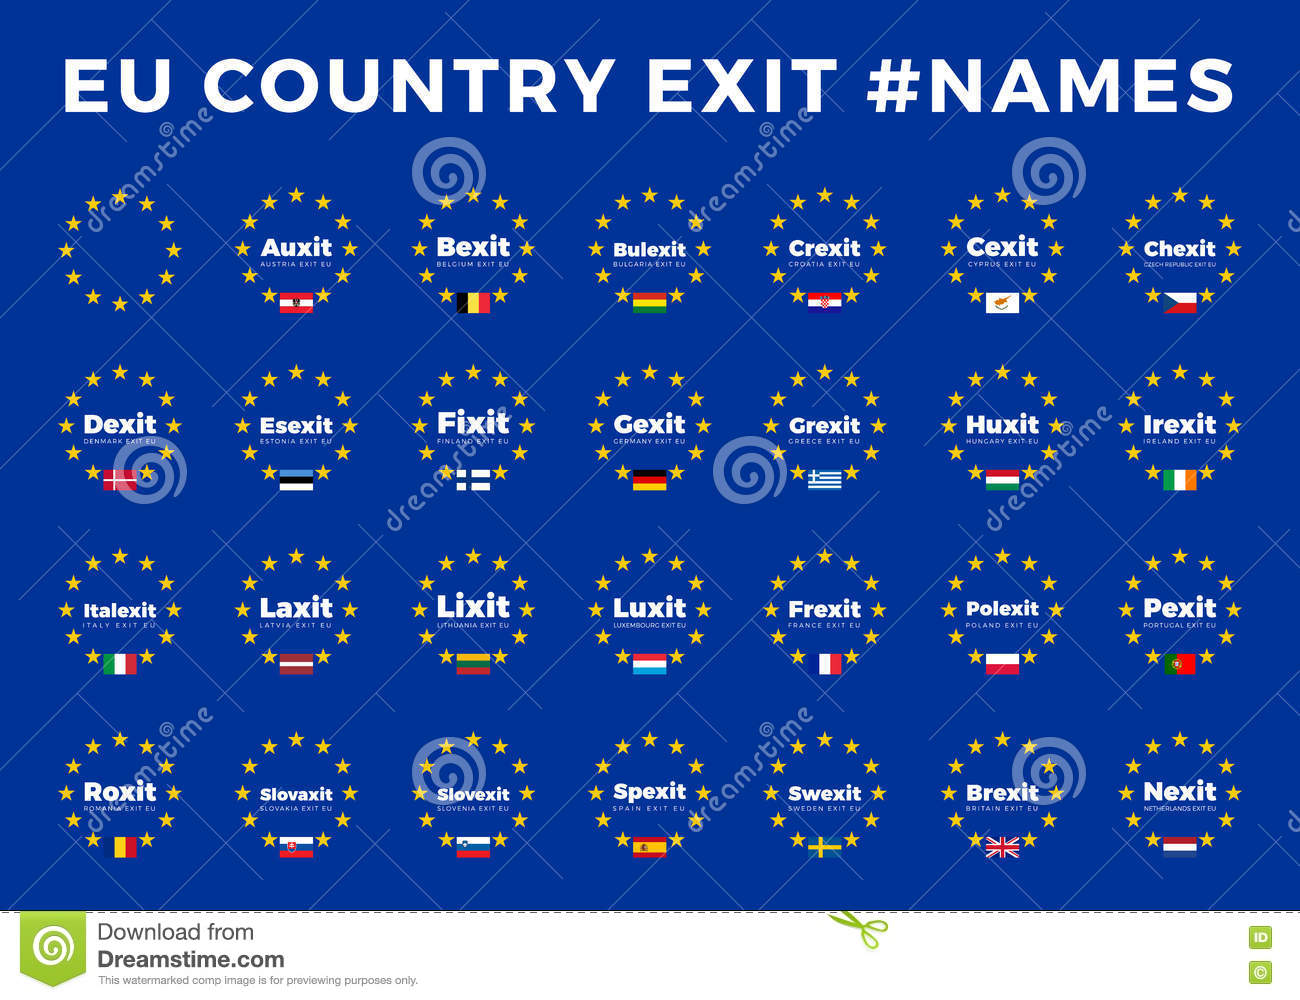 A Z Country Names >> Names For EU Exits Members. Brexit, Frexit, Italexit, Spexit Stock Image - Image: 73563505